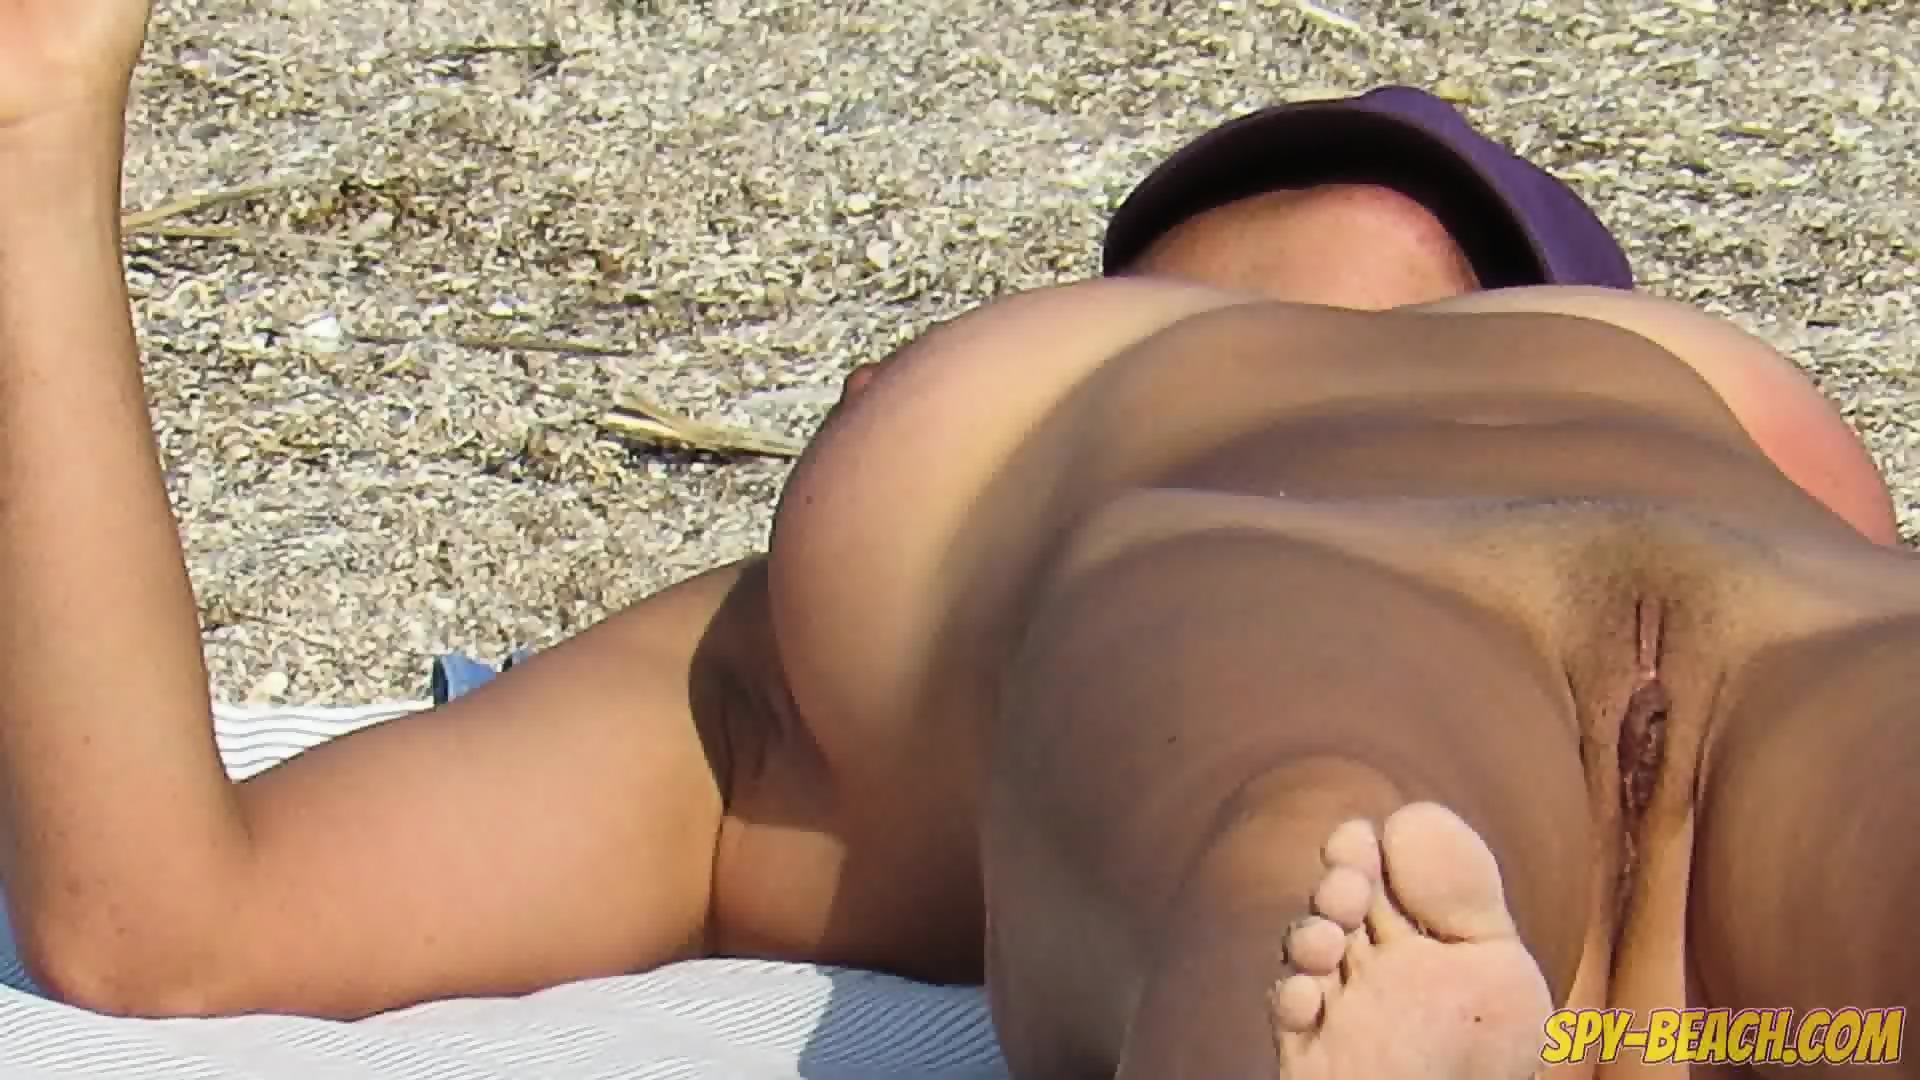 michelle viet sex video